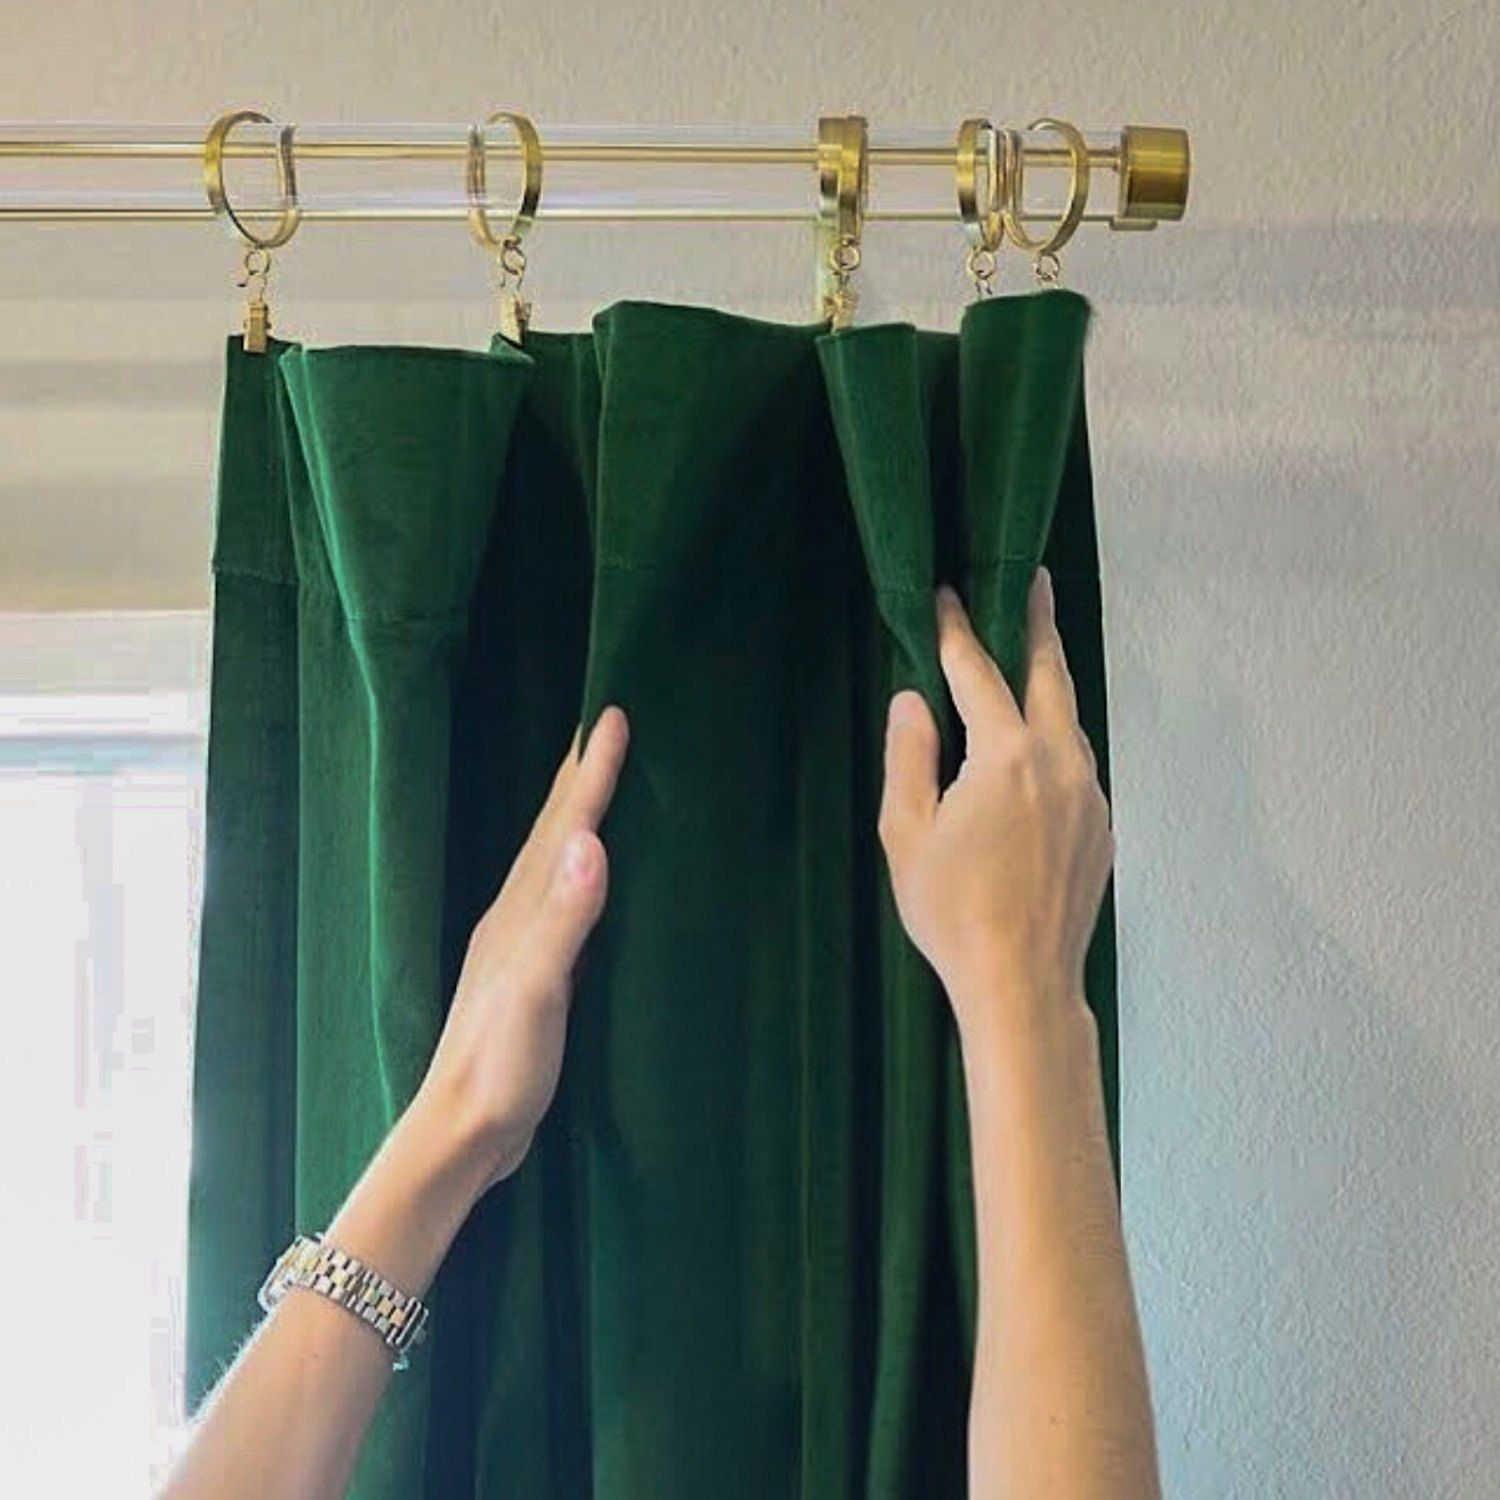 Emerald Green Velvet Curtains You Ll Love In 2021 Visualhunt